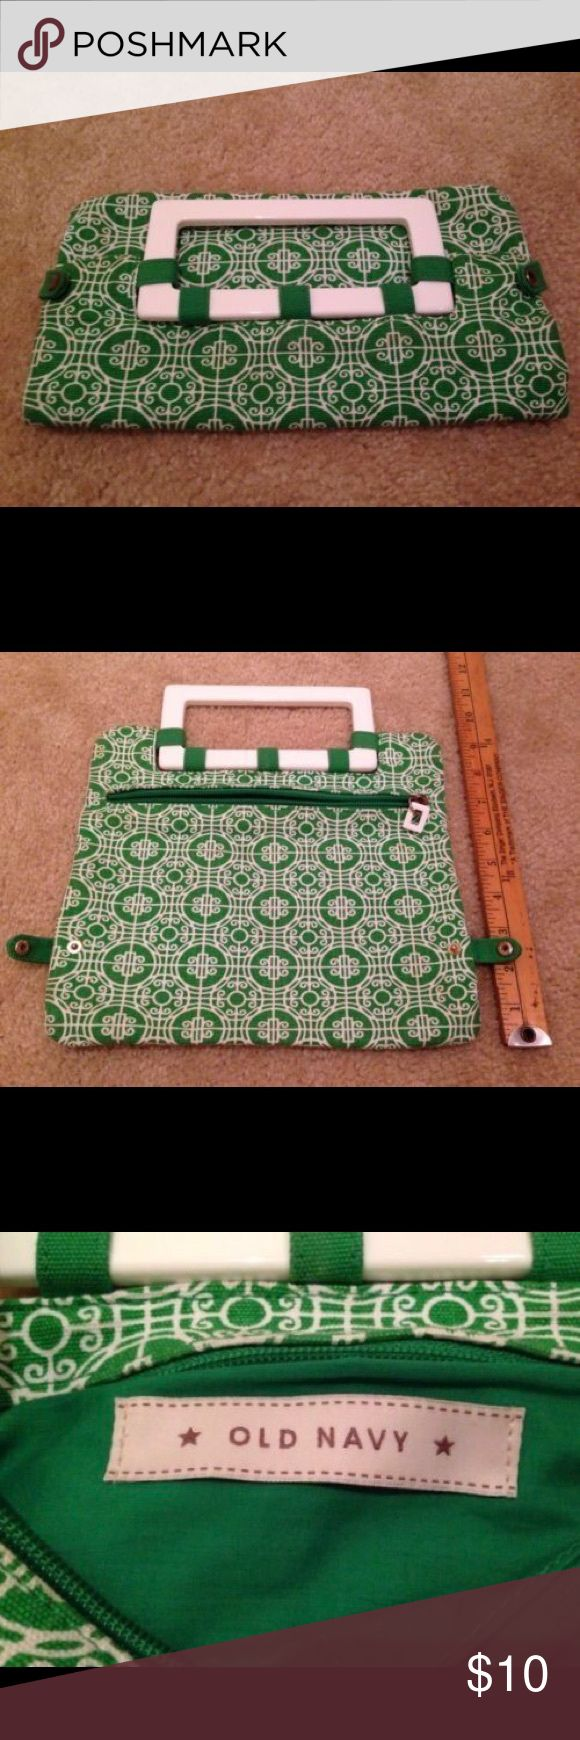 Old Navy Clutch handbag Unique handle Lime clutch Old Navy Clutch handbag Unique handle Lime Green White medallion pattern Purse. This is the Lilly Pulitzer type green.  Would look awesome with a Lilly outfit. Old Navy Bags Clutches & Wristlets